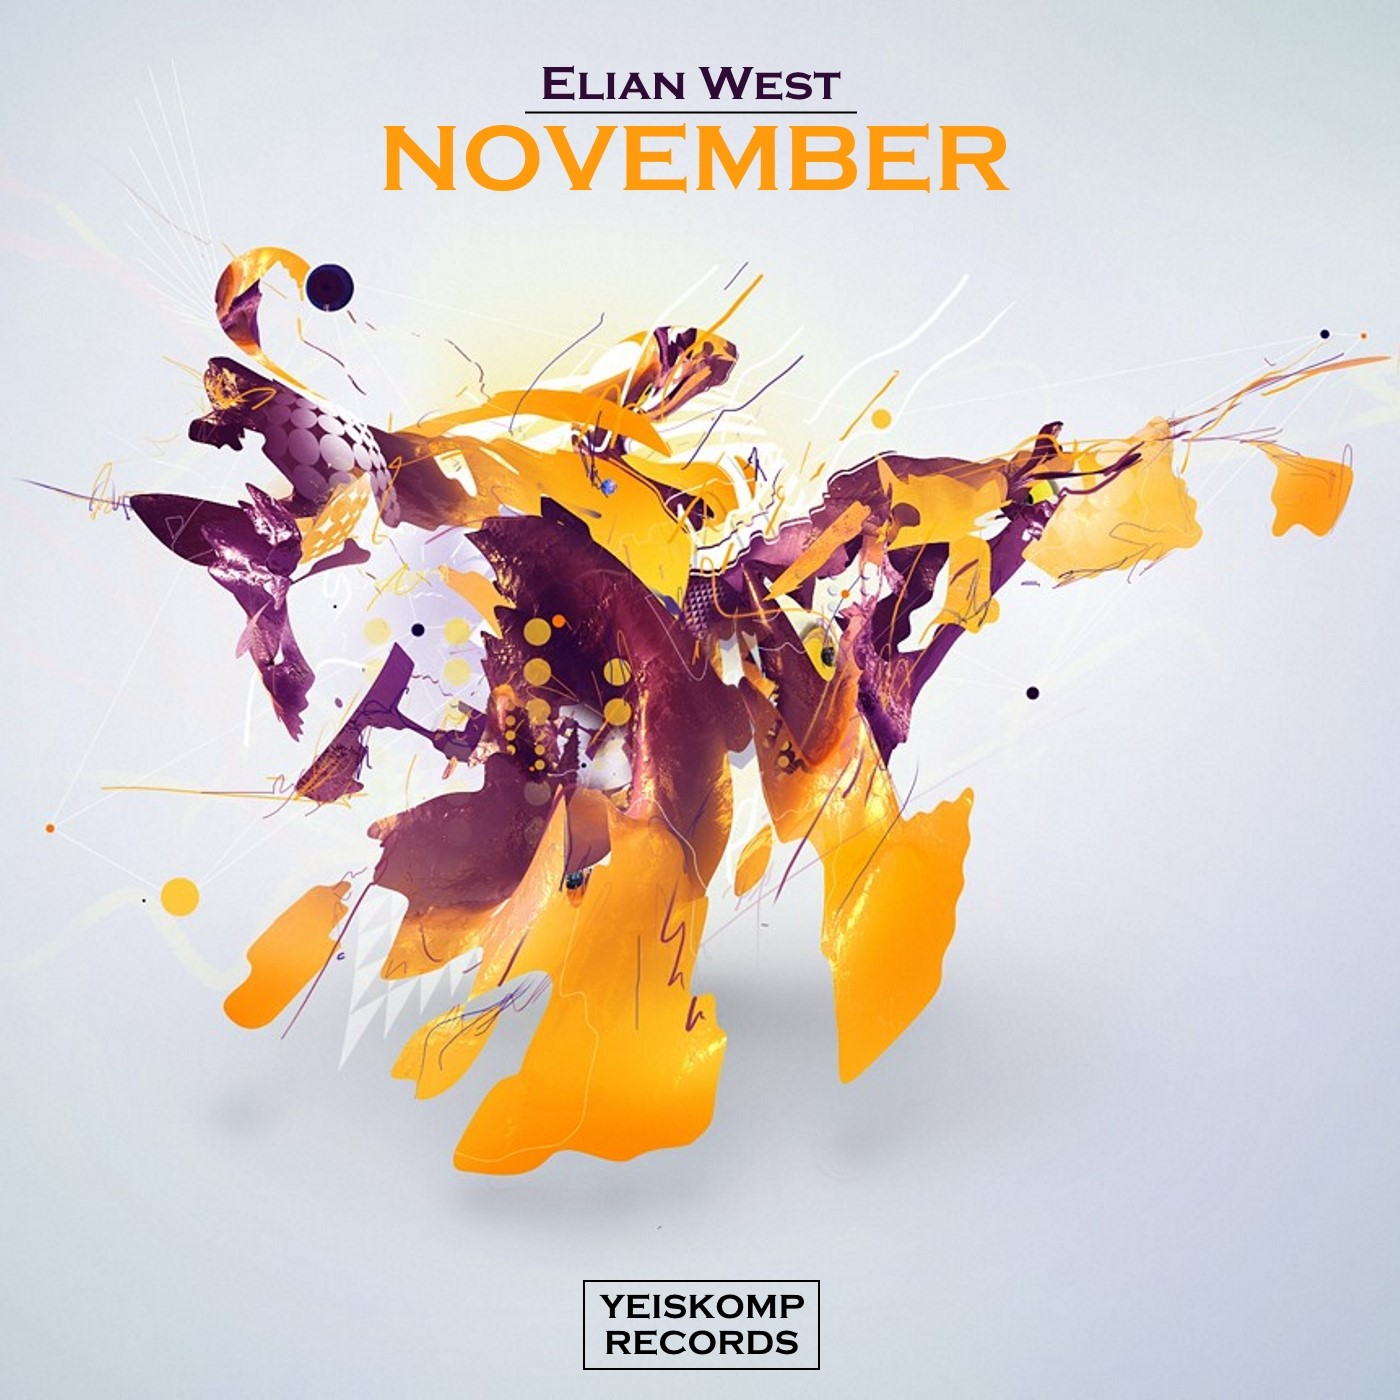 Elian West - November (Original Mix)